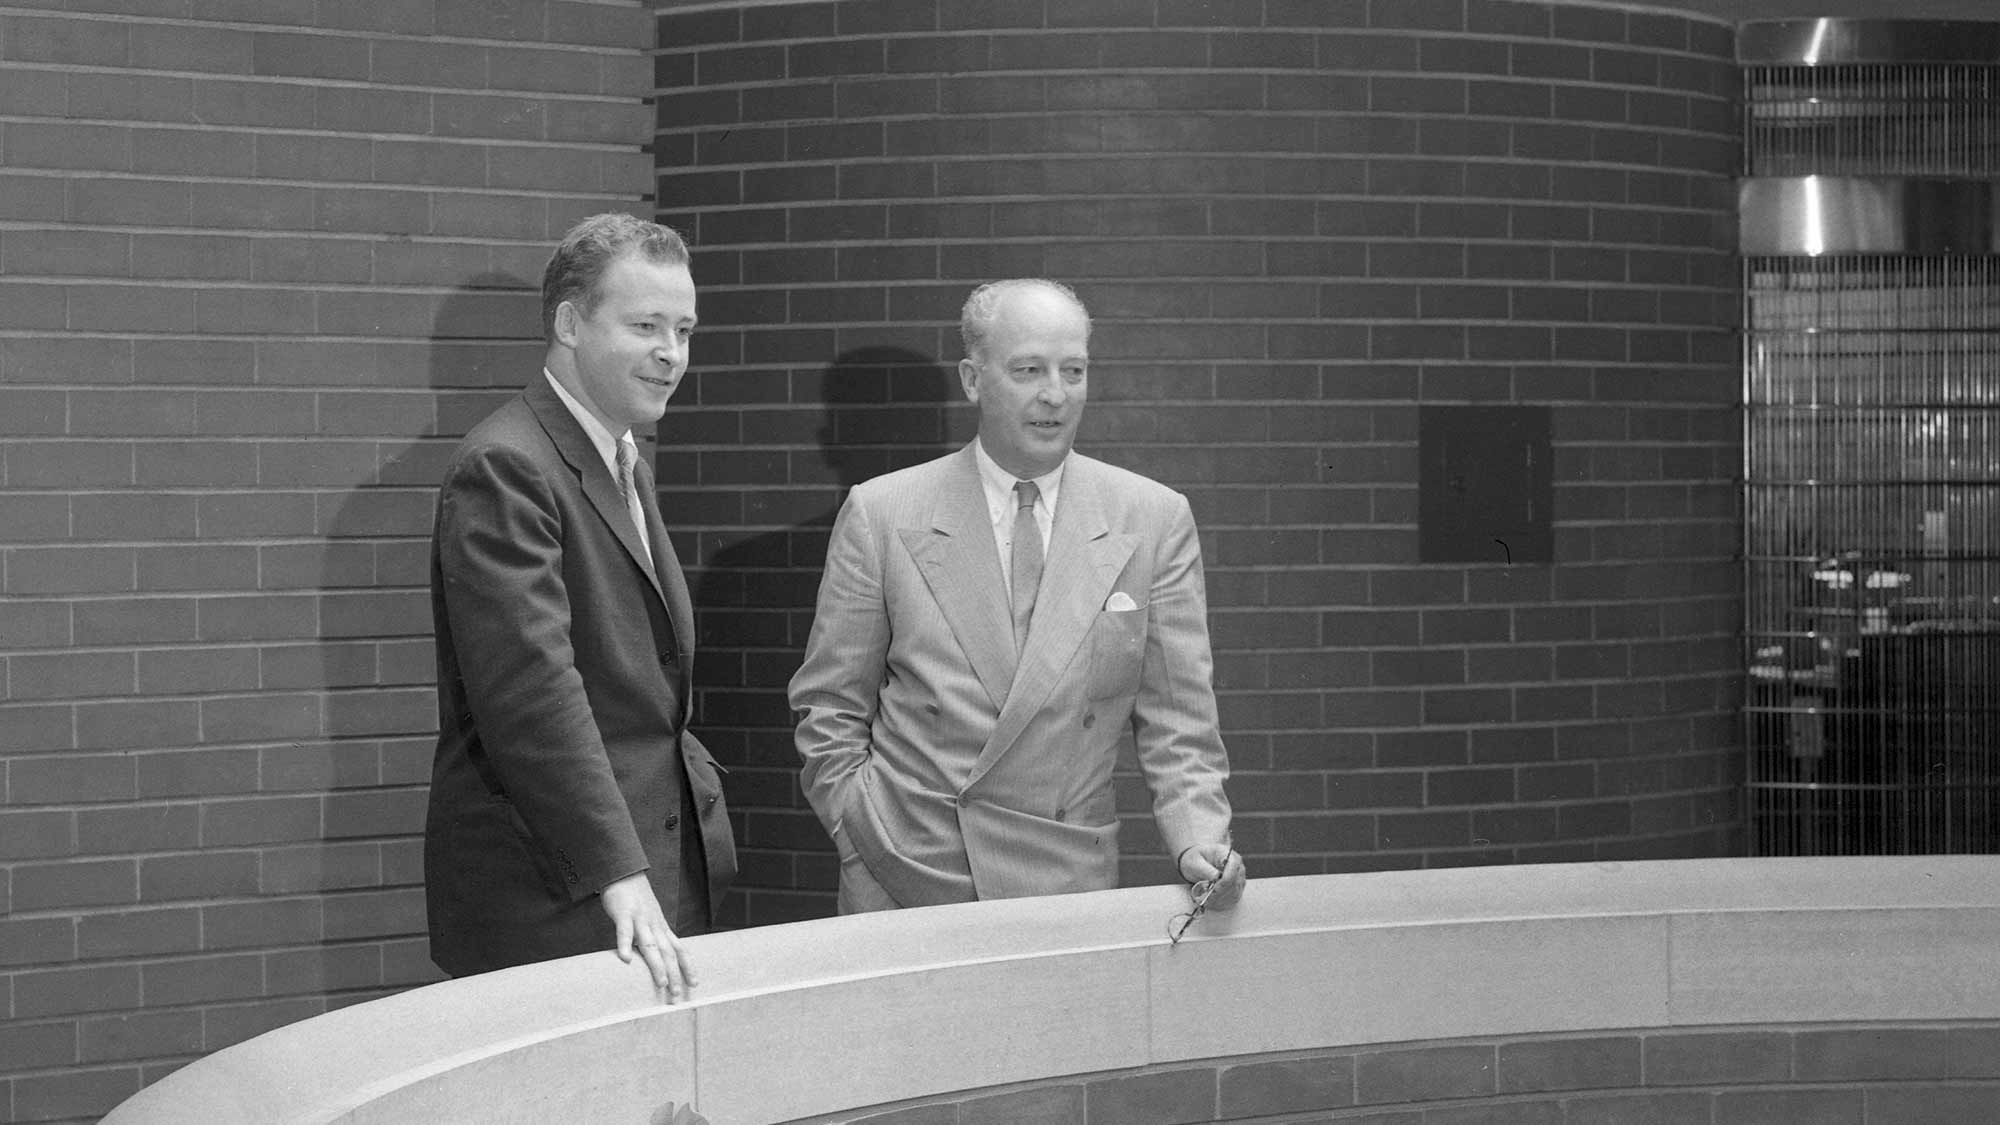 Herbert F Johnson en Sam Johnson in het door Frank Lloyd Wright ontworpen Administration Building